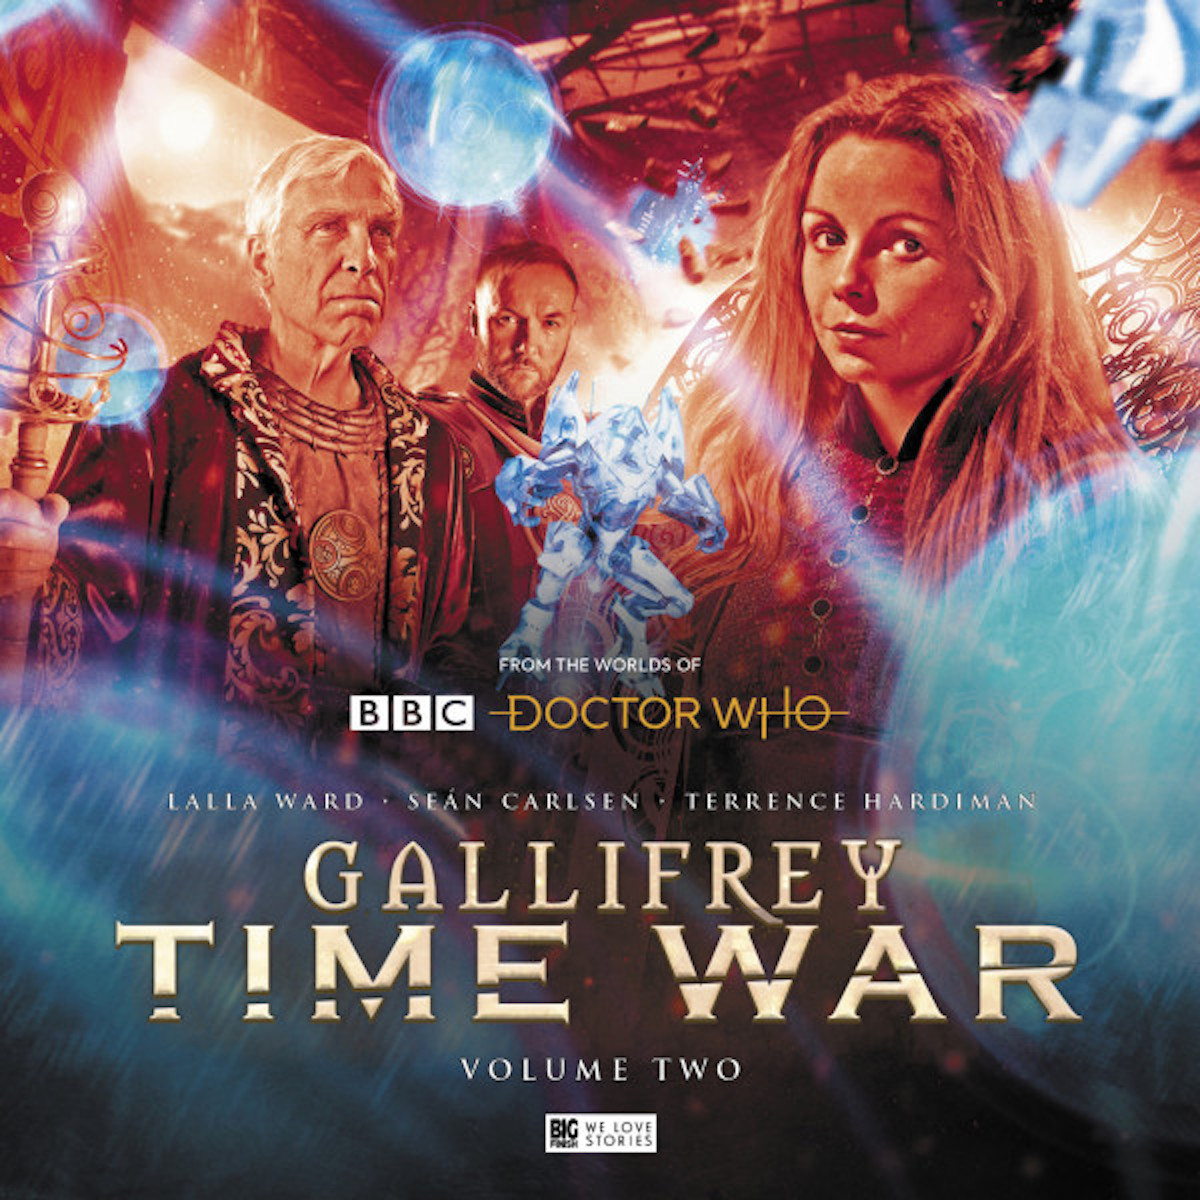 Gallifrey Time War Volume 2